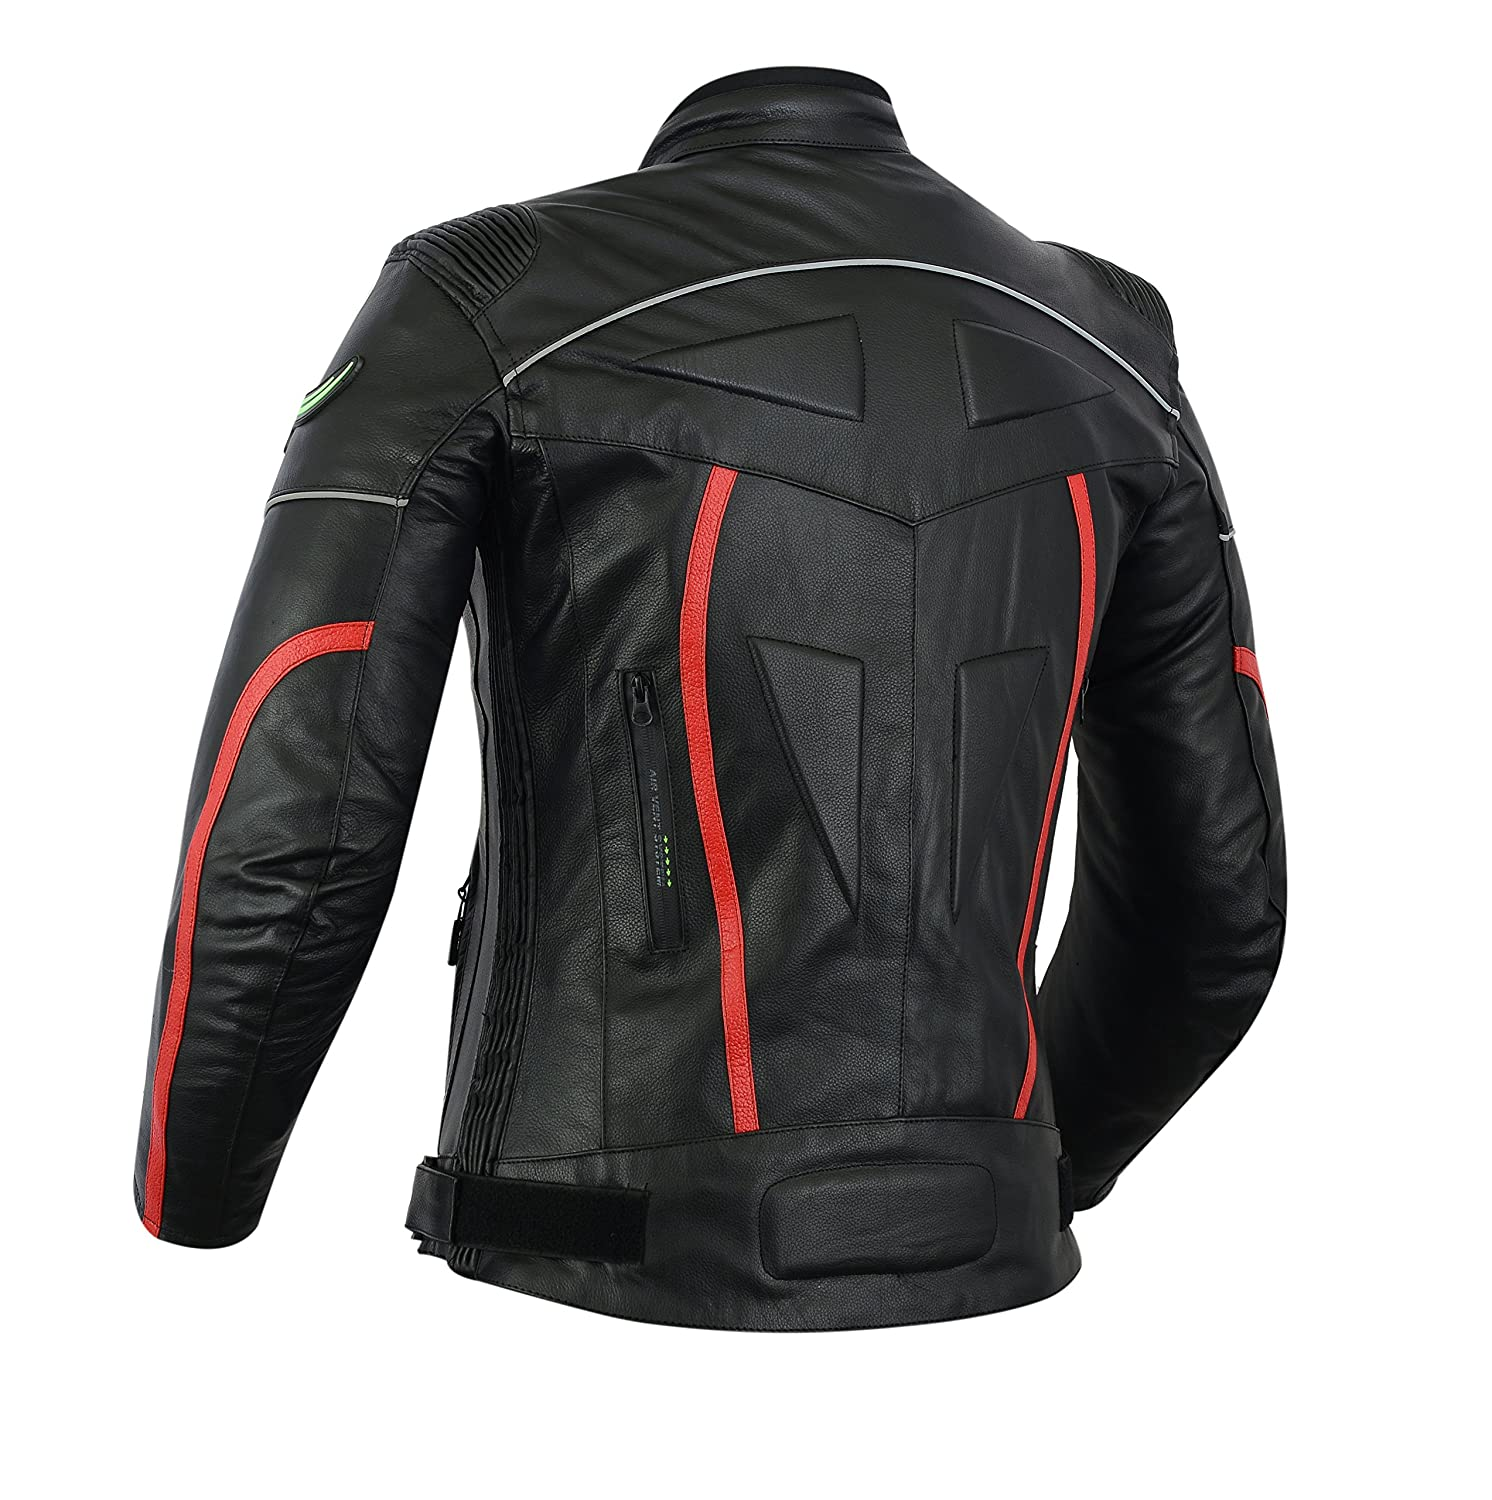 RIDEX Mens LJ2W Biker Motorbike Motorcycle Protection Leather Jacket